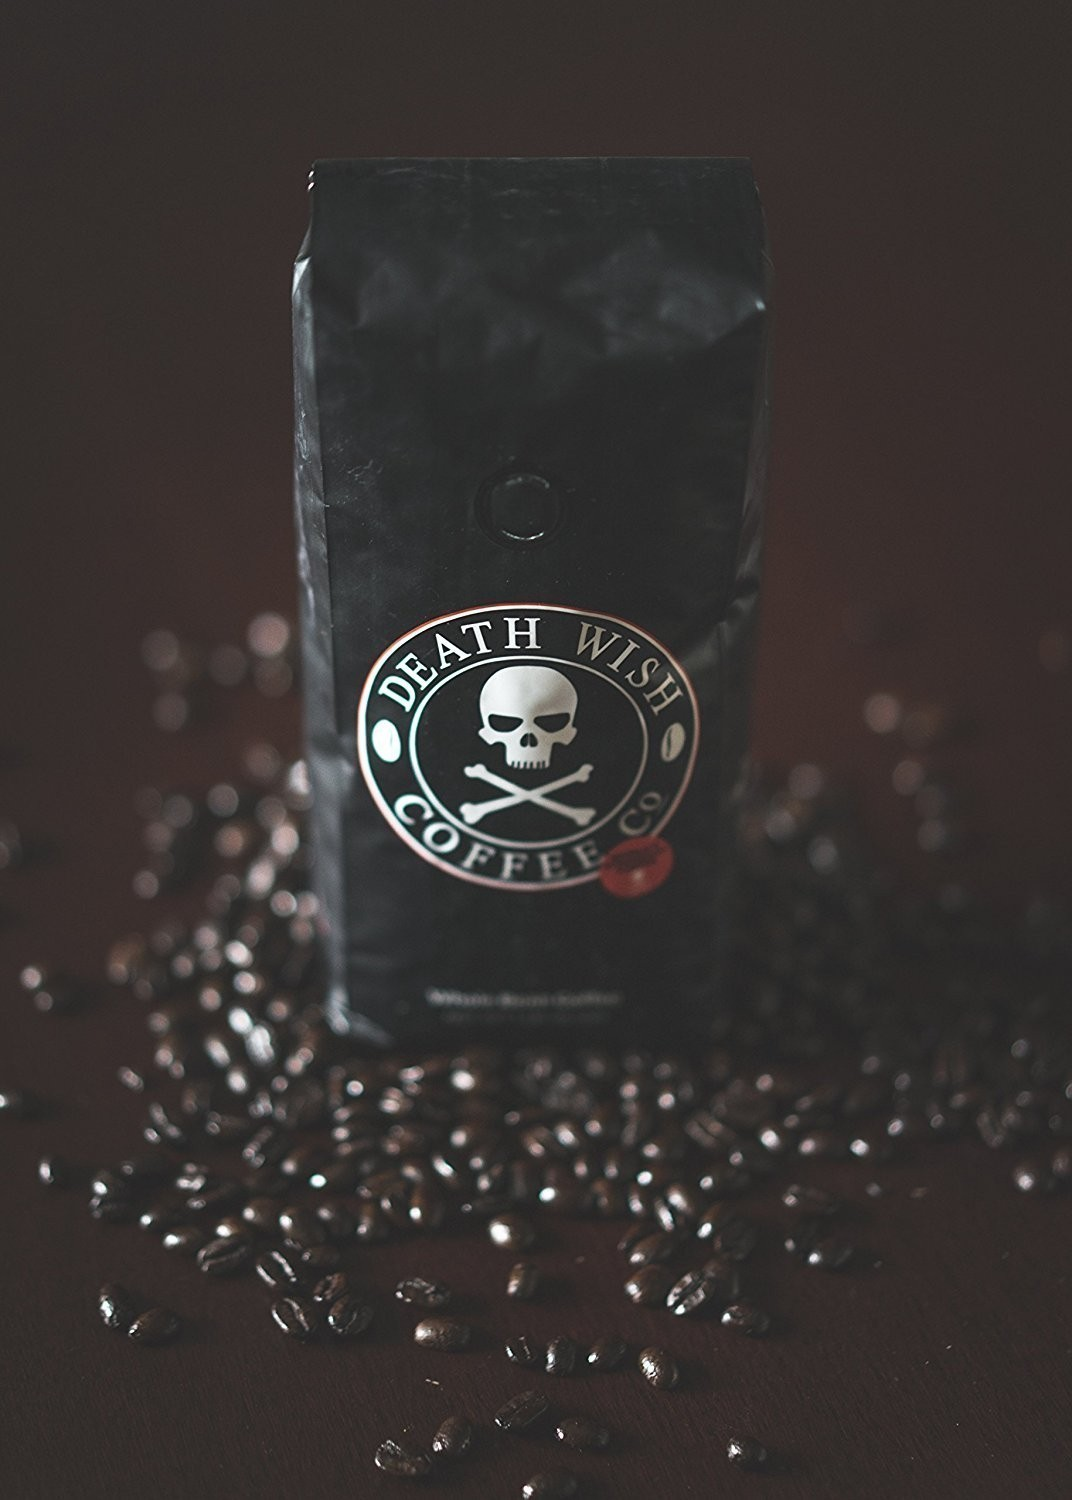 7. Death Wish Coffee, The World's Strongest Coffee